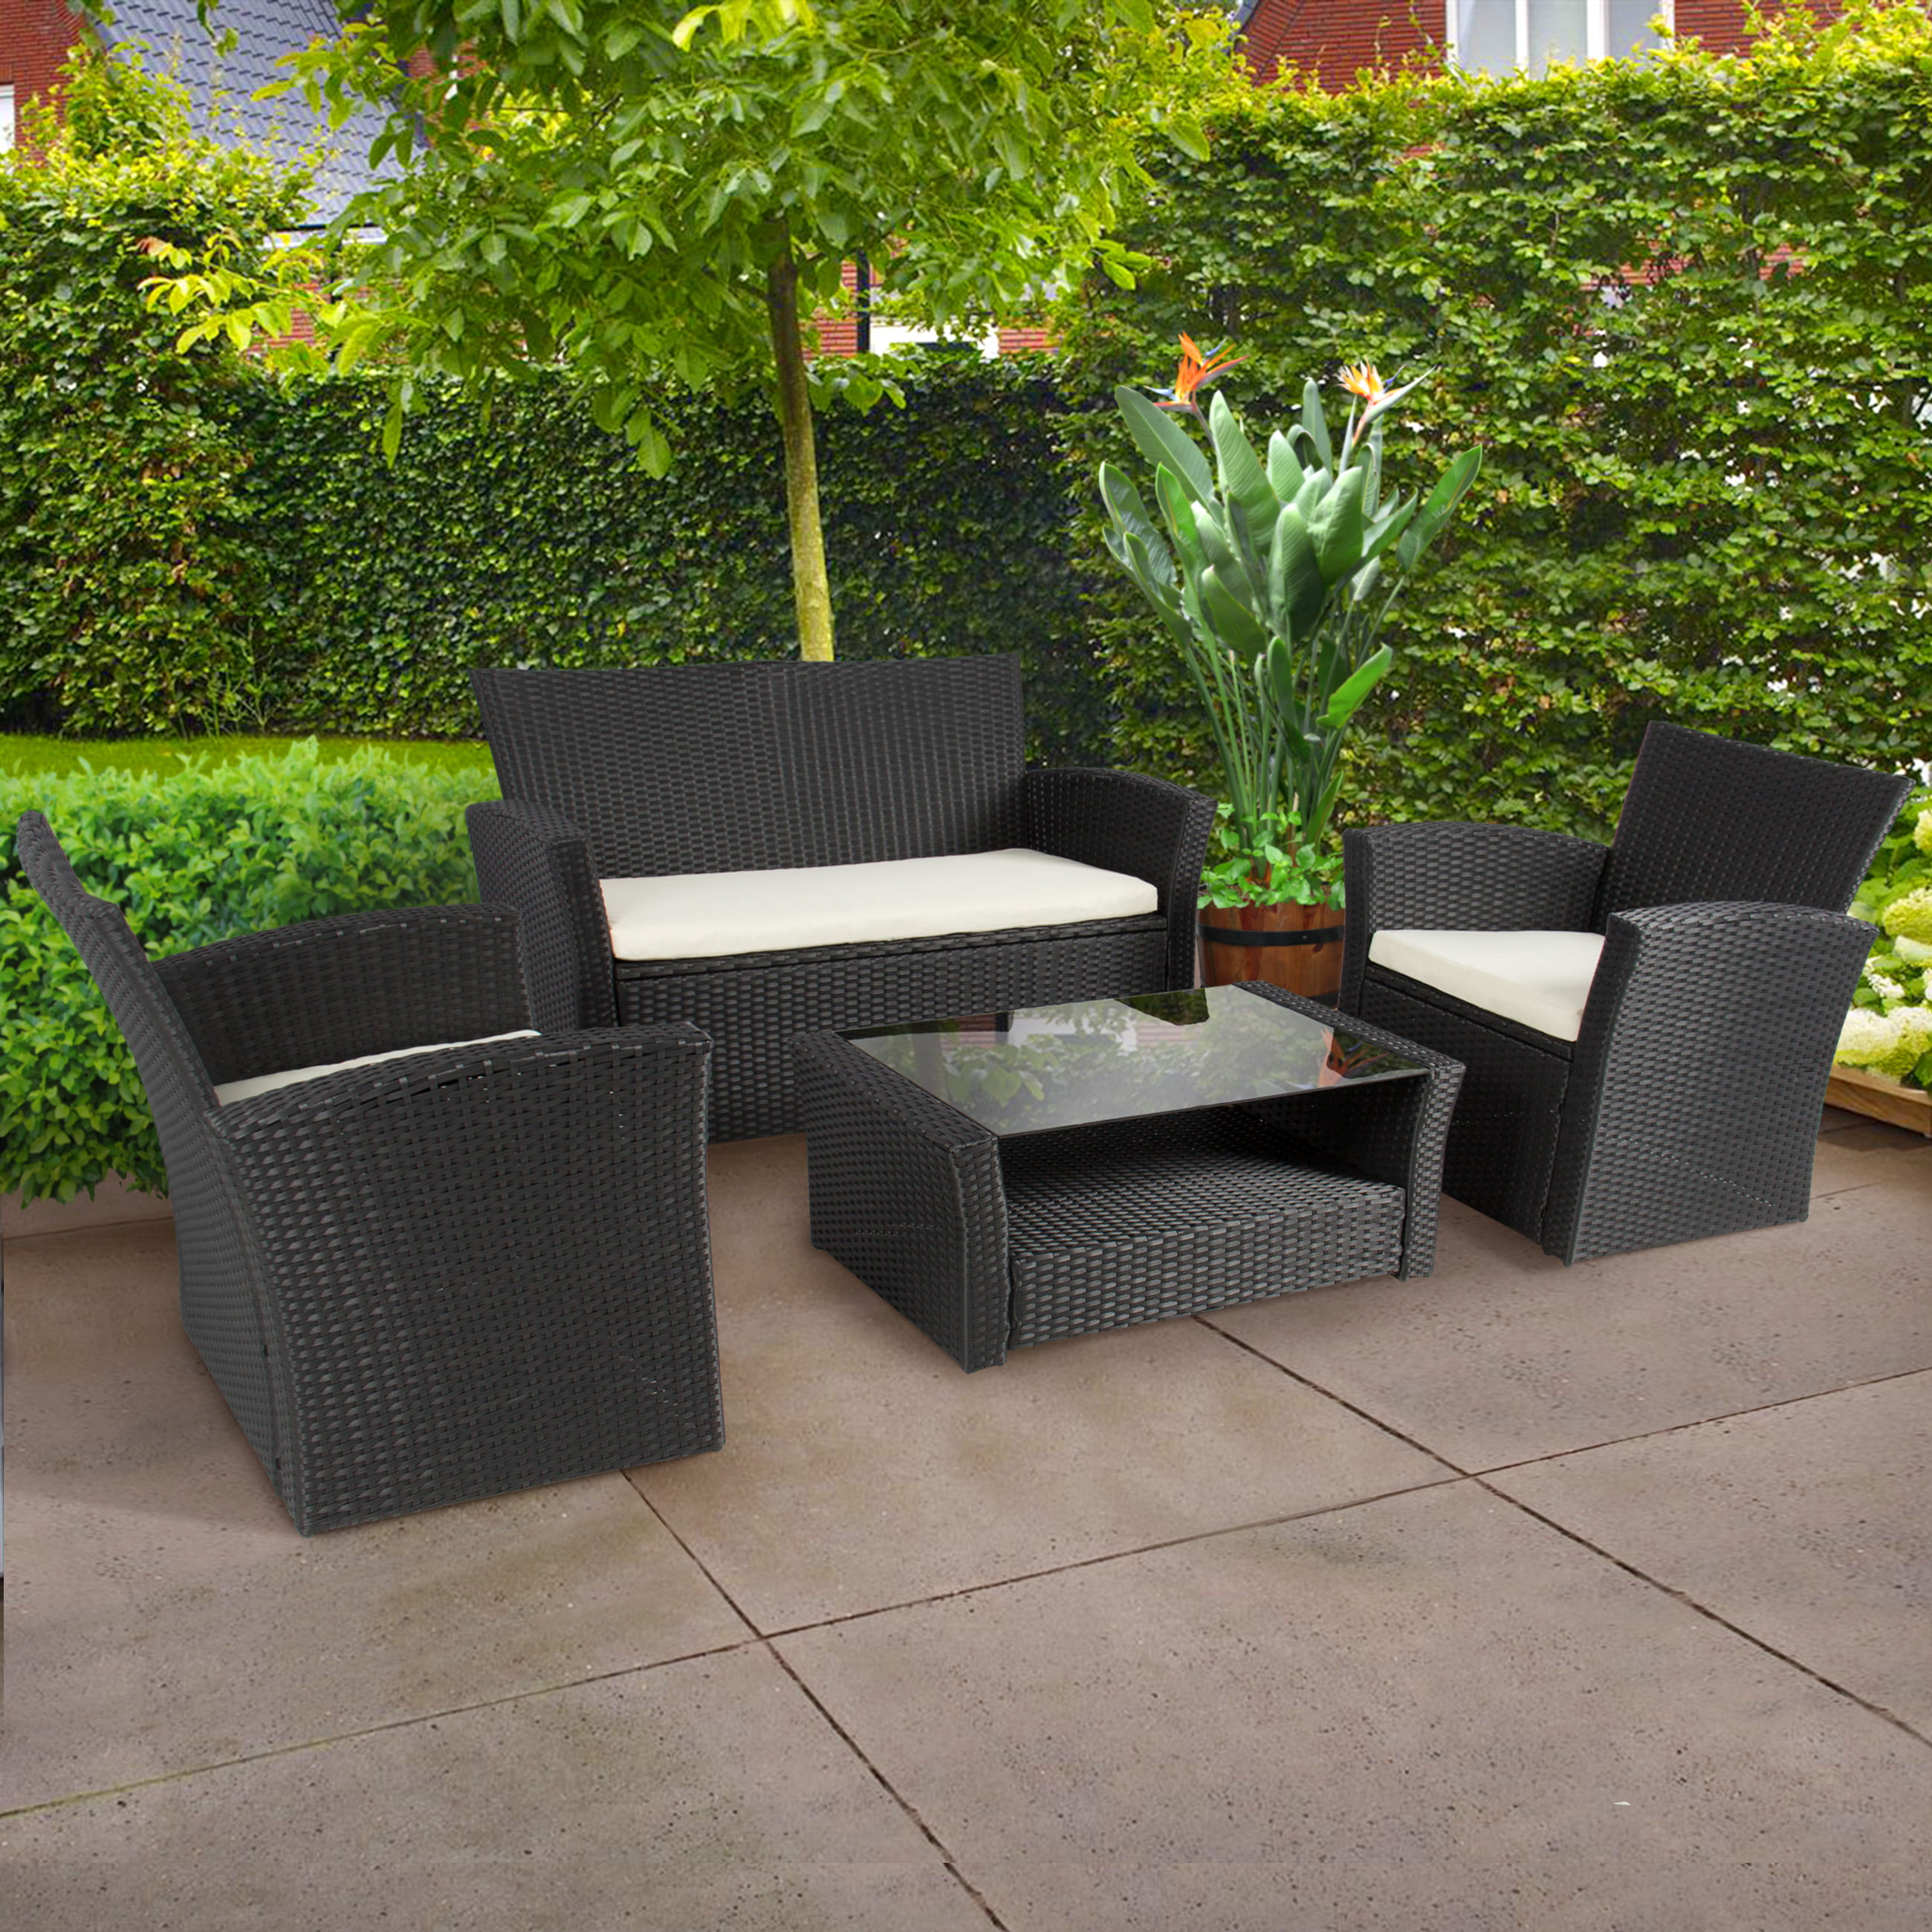 cilantro green wicker set piece products rattan patio furniture resin conversation sawyer